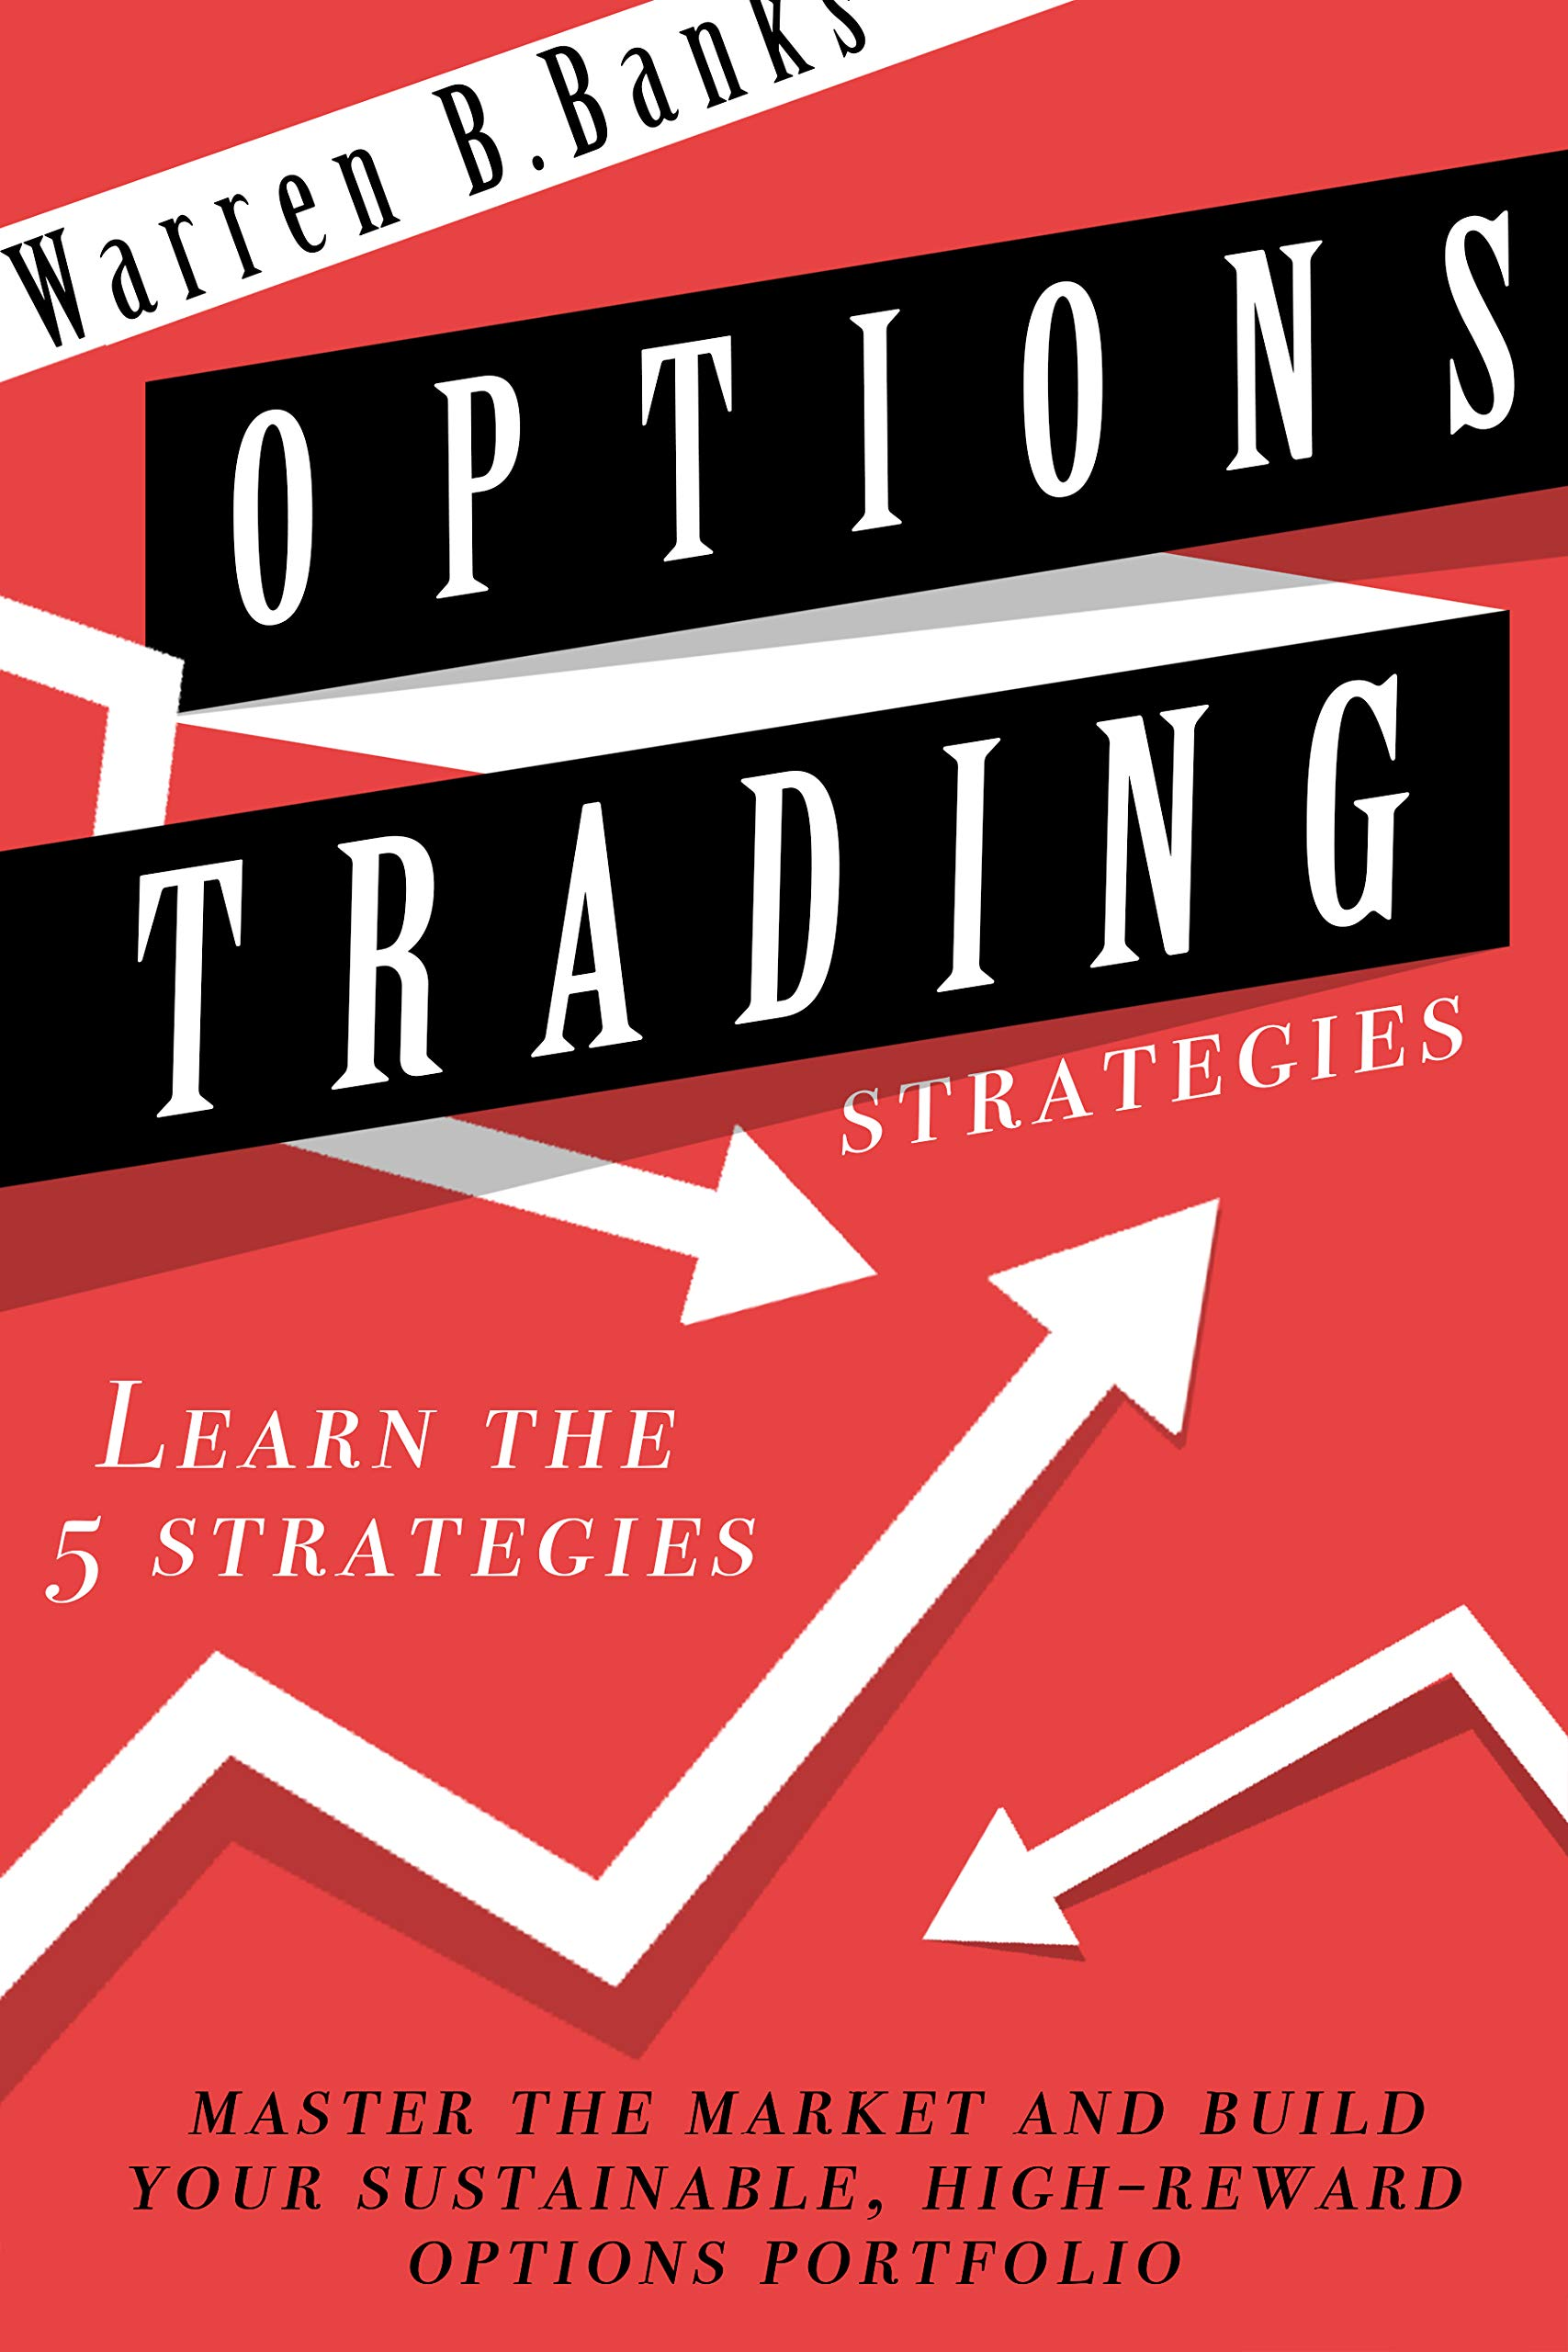 Options Trading Strategies: Learn The 5 Strategies, Master The Market And Build Your Sustainable, High-Reward Options Portfolio